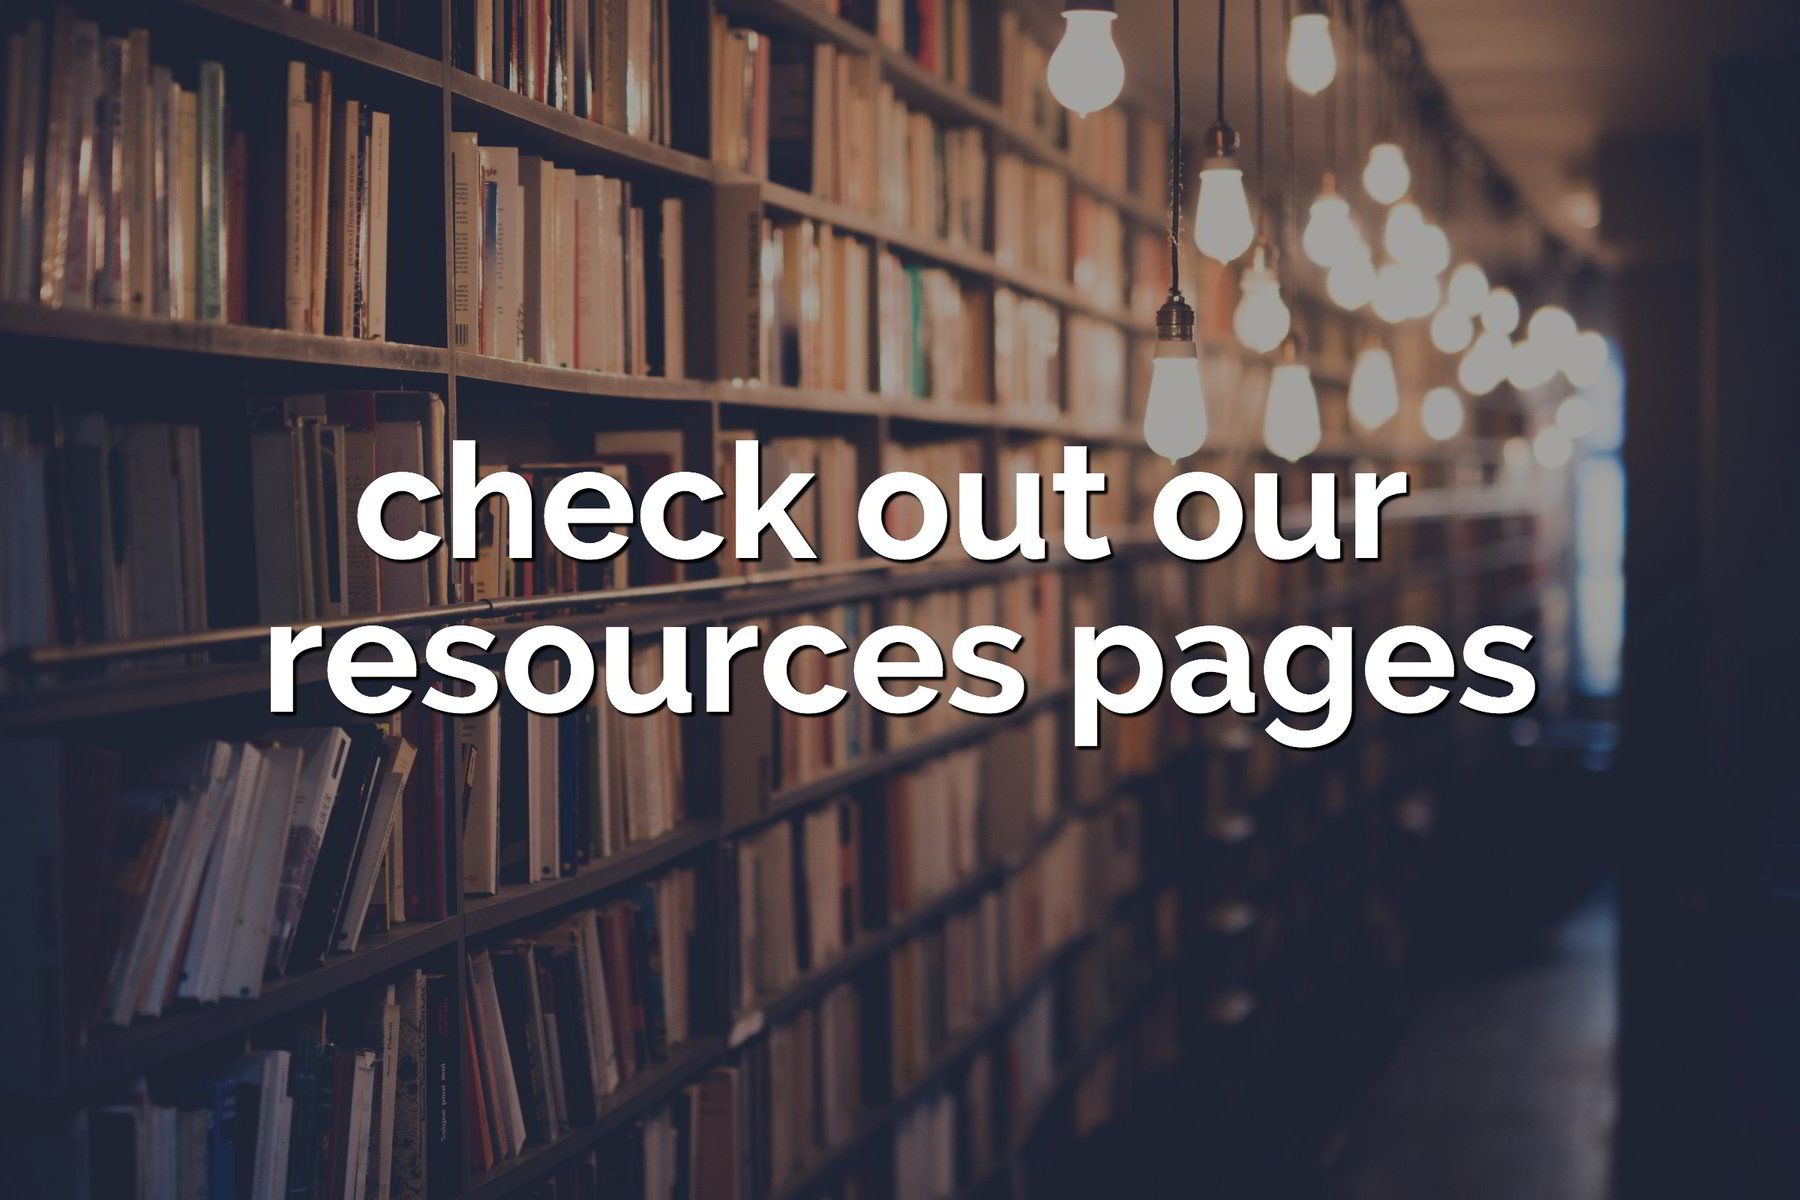 check out our resources page